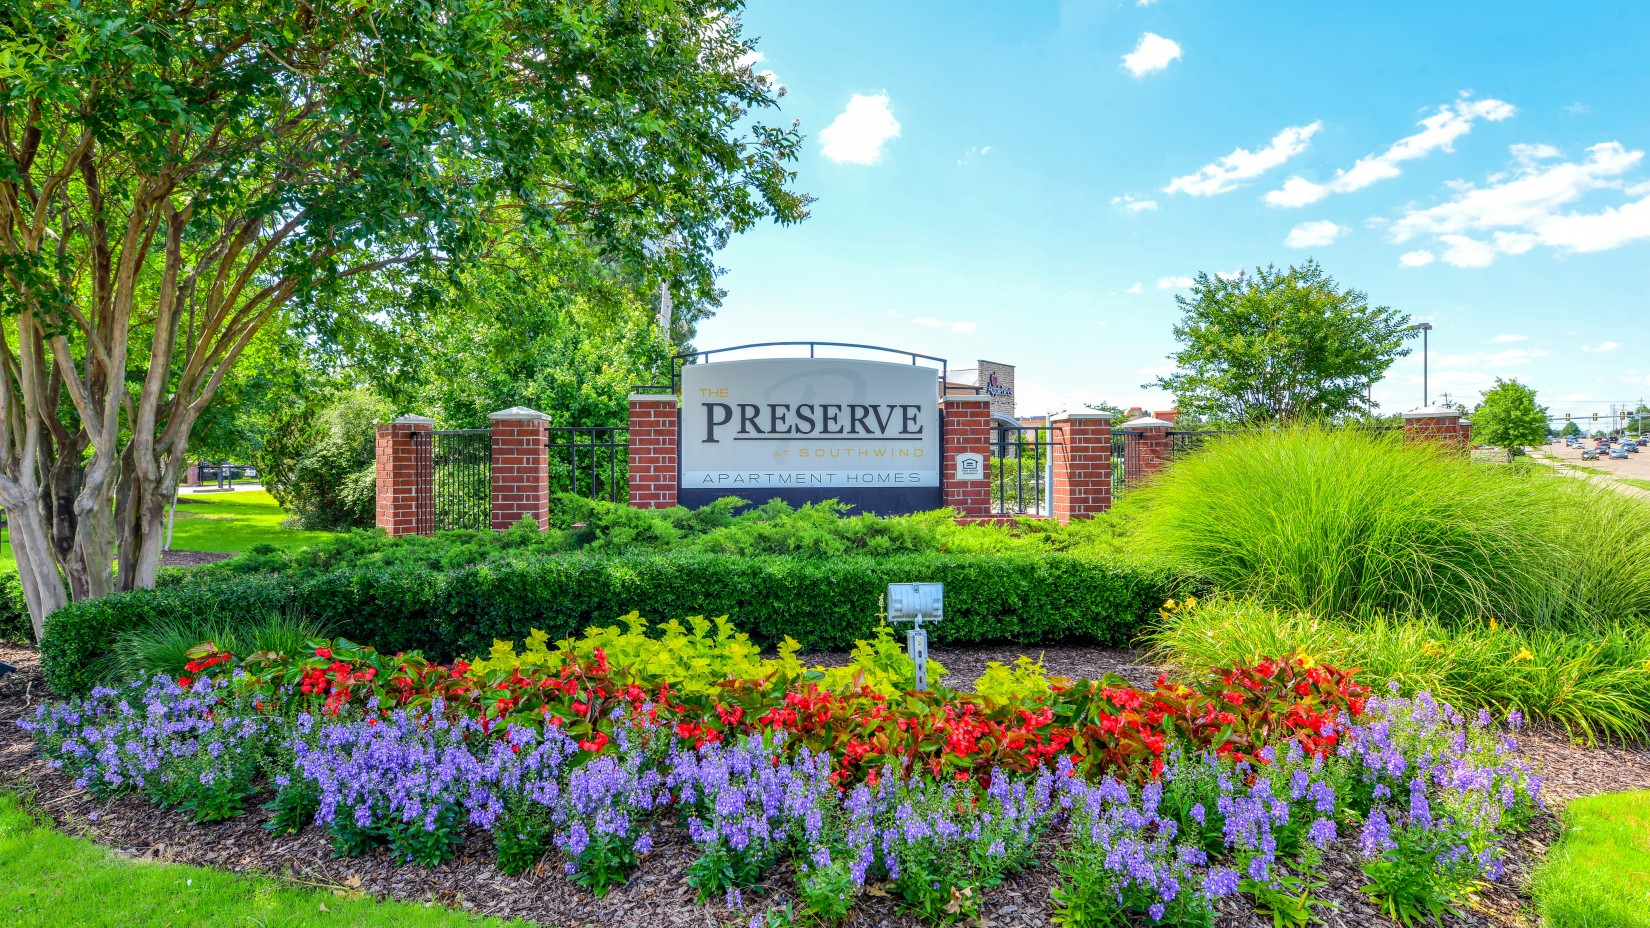 The Preserve at Southwind